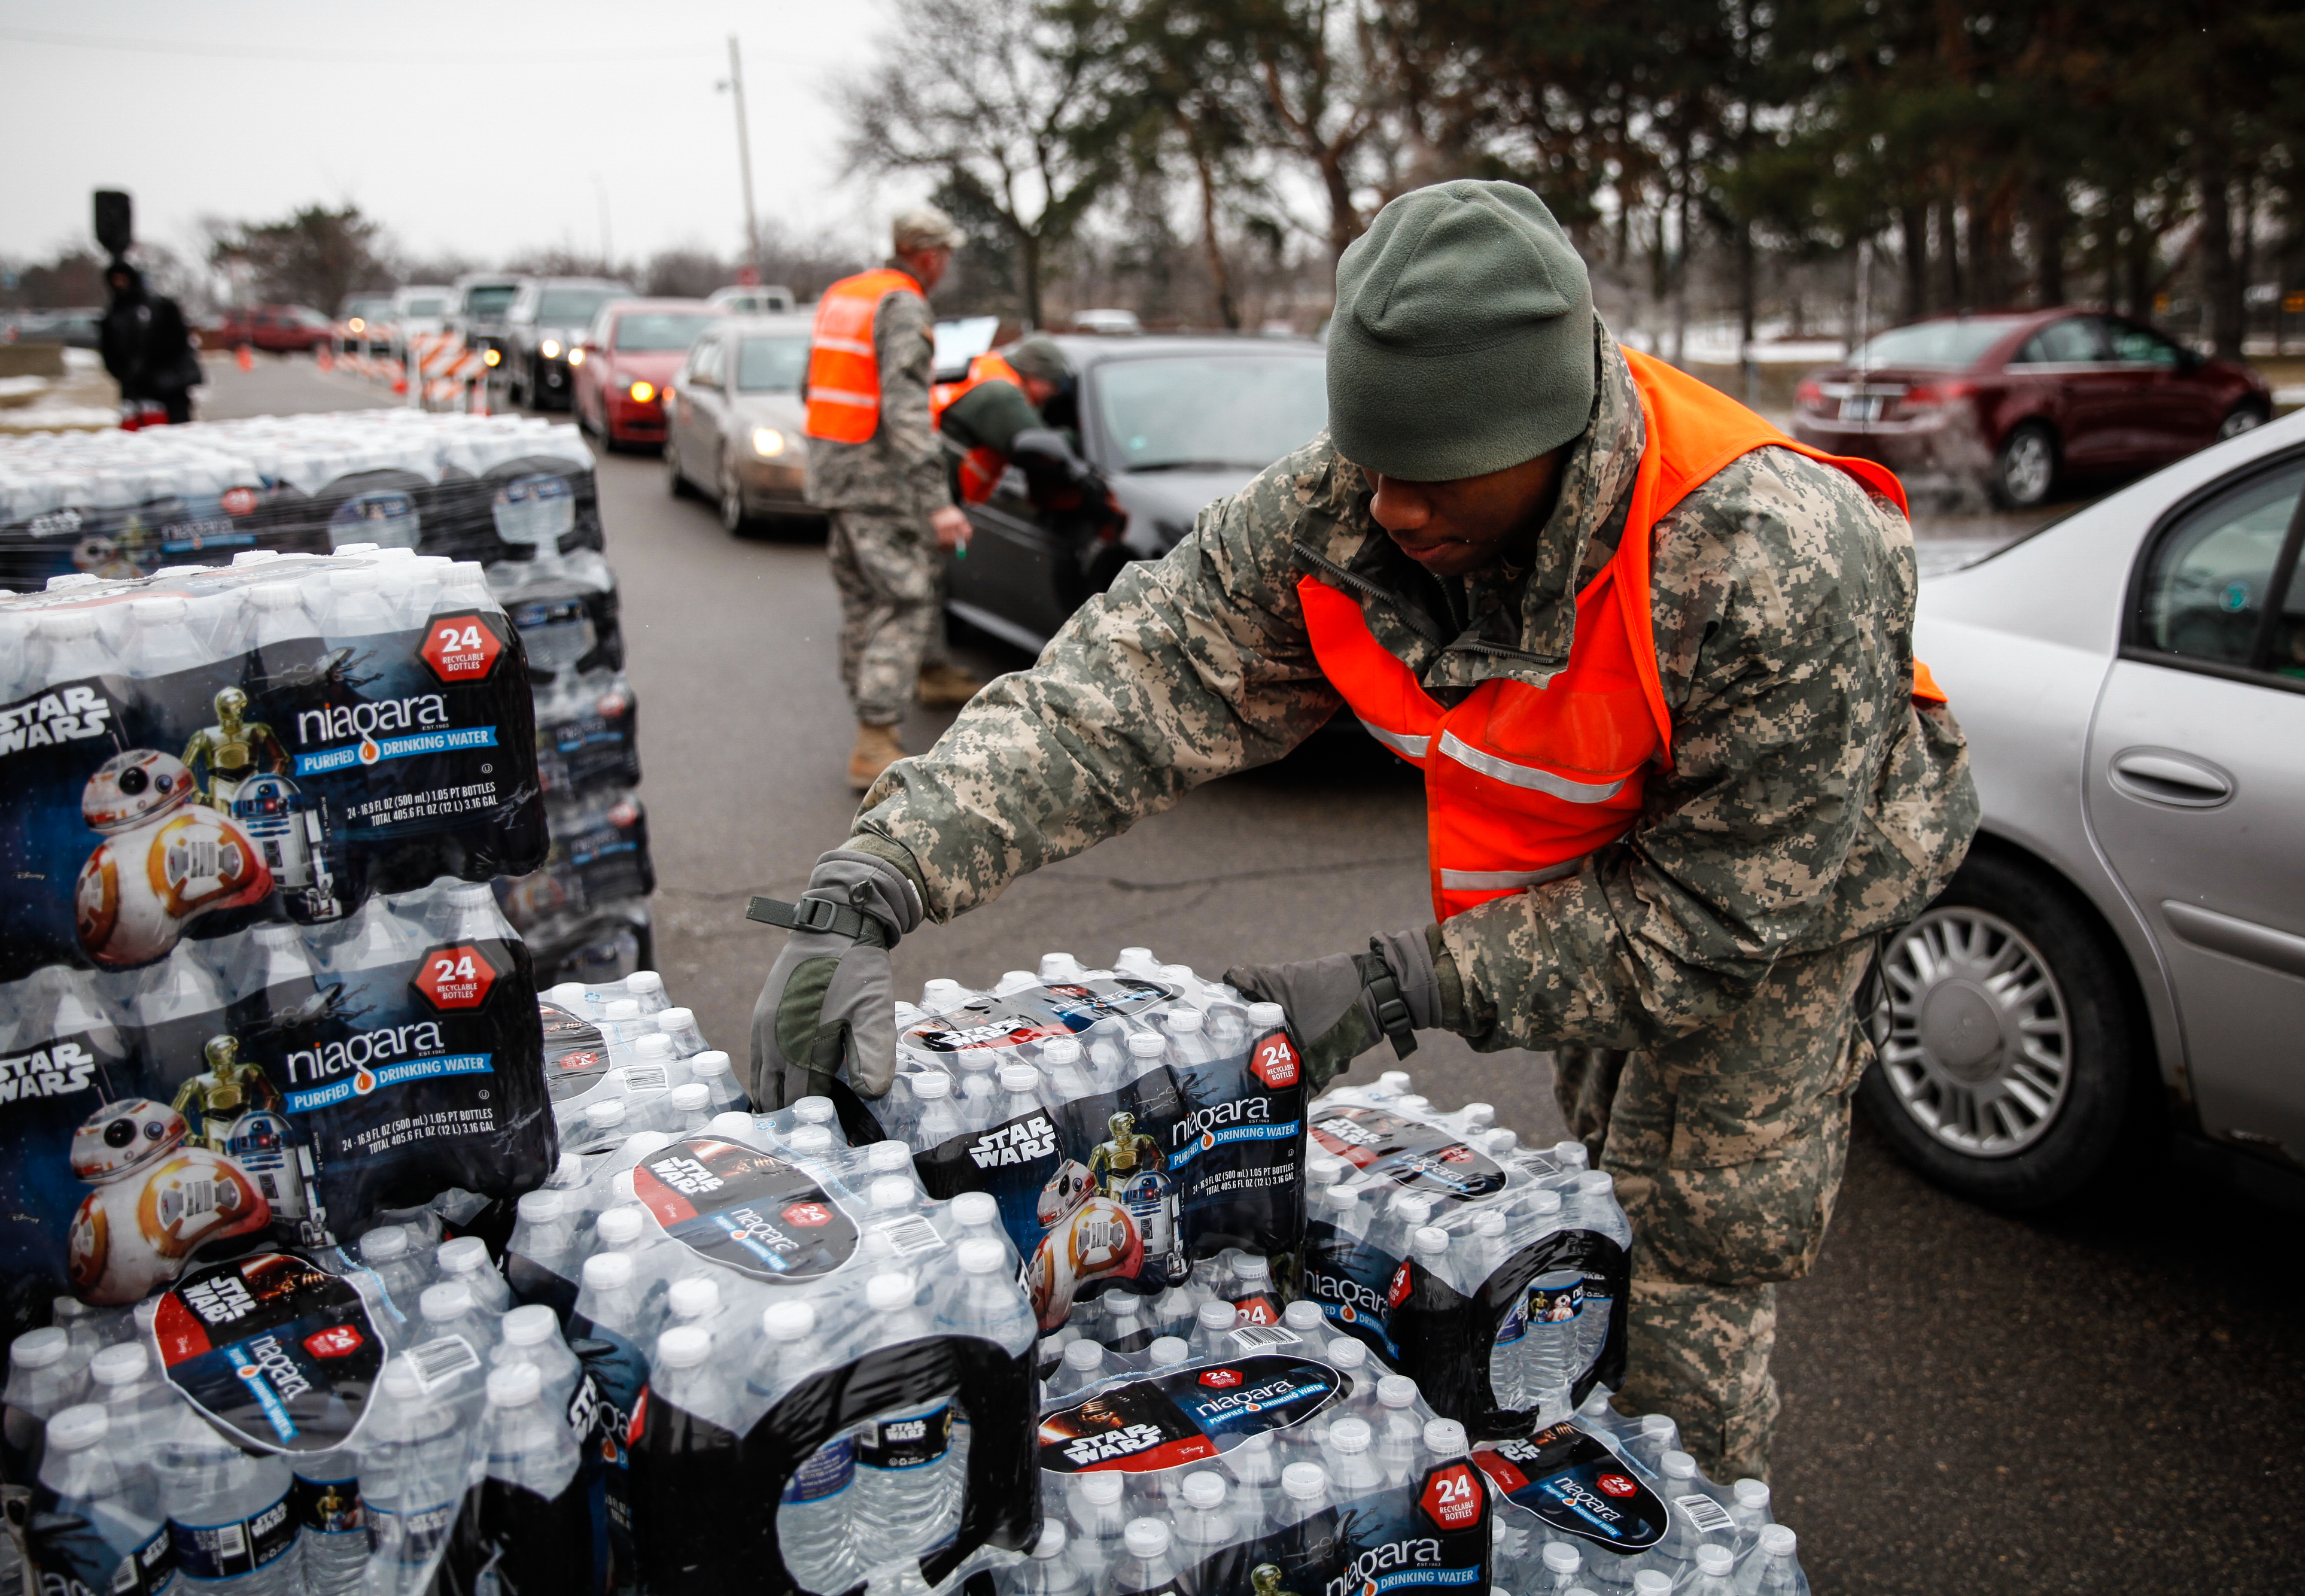 Michigan Is Ending Free Bottled Water For Flint, Governor Says Water Crisis Is Over